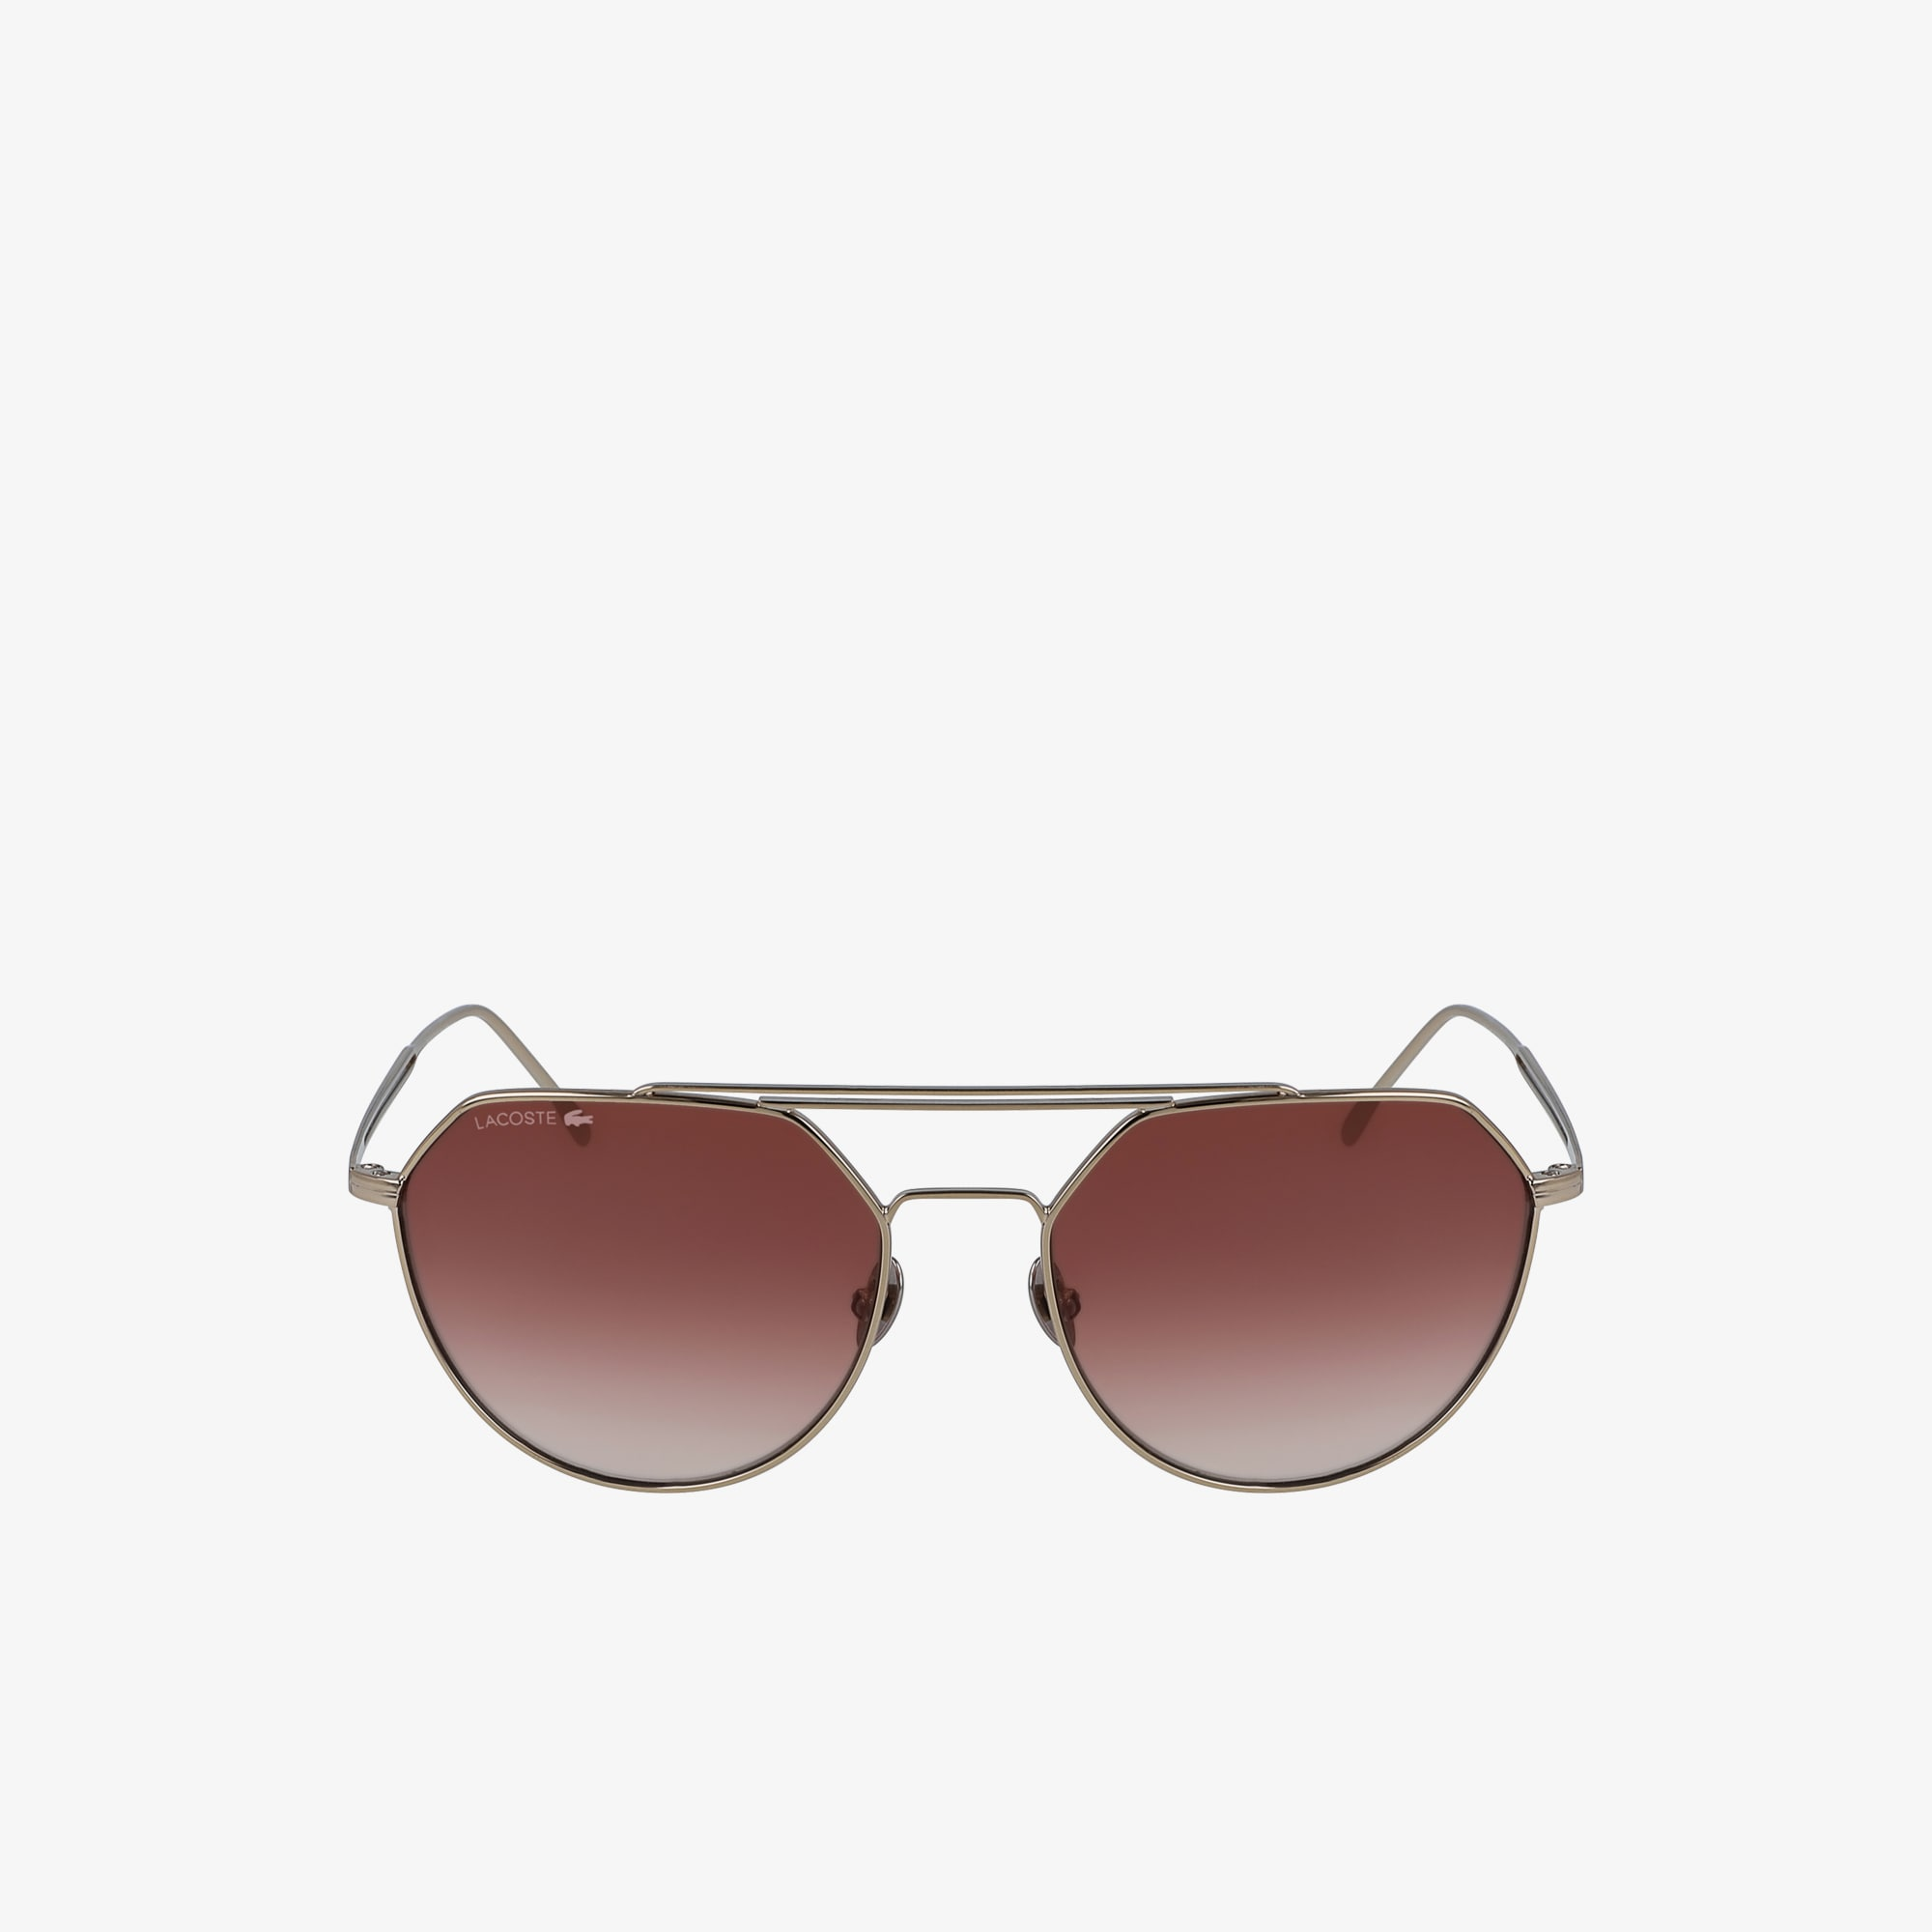 Paris Collection-Sonnenbrille mit ovalem Metallrahmen